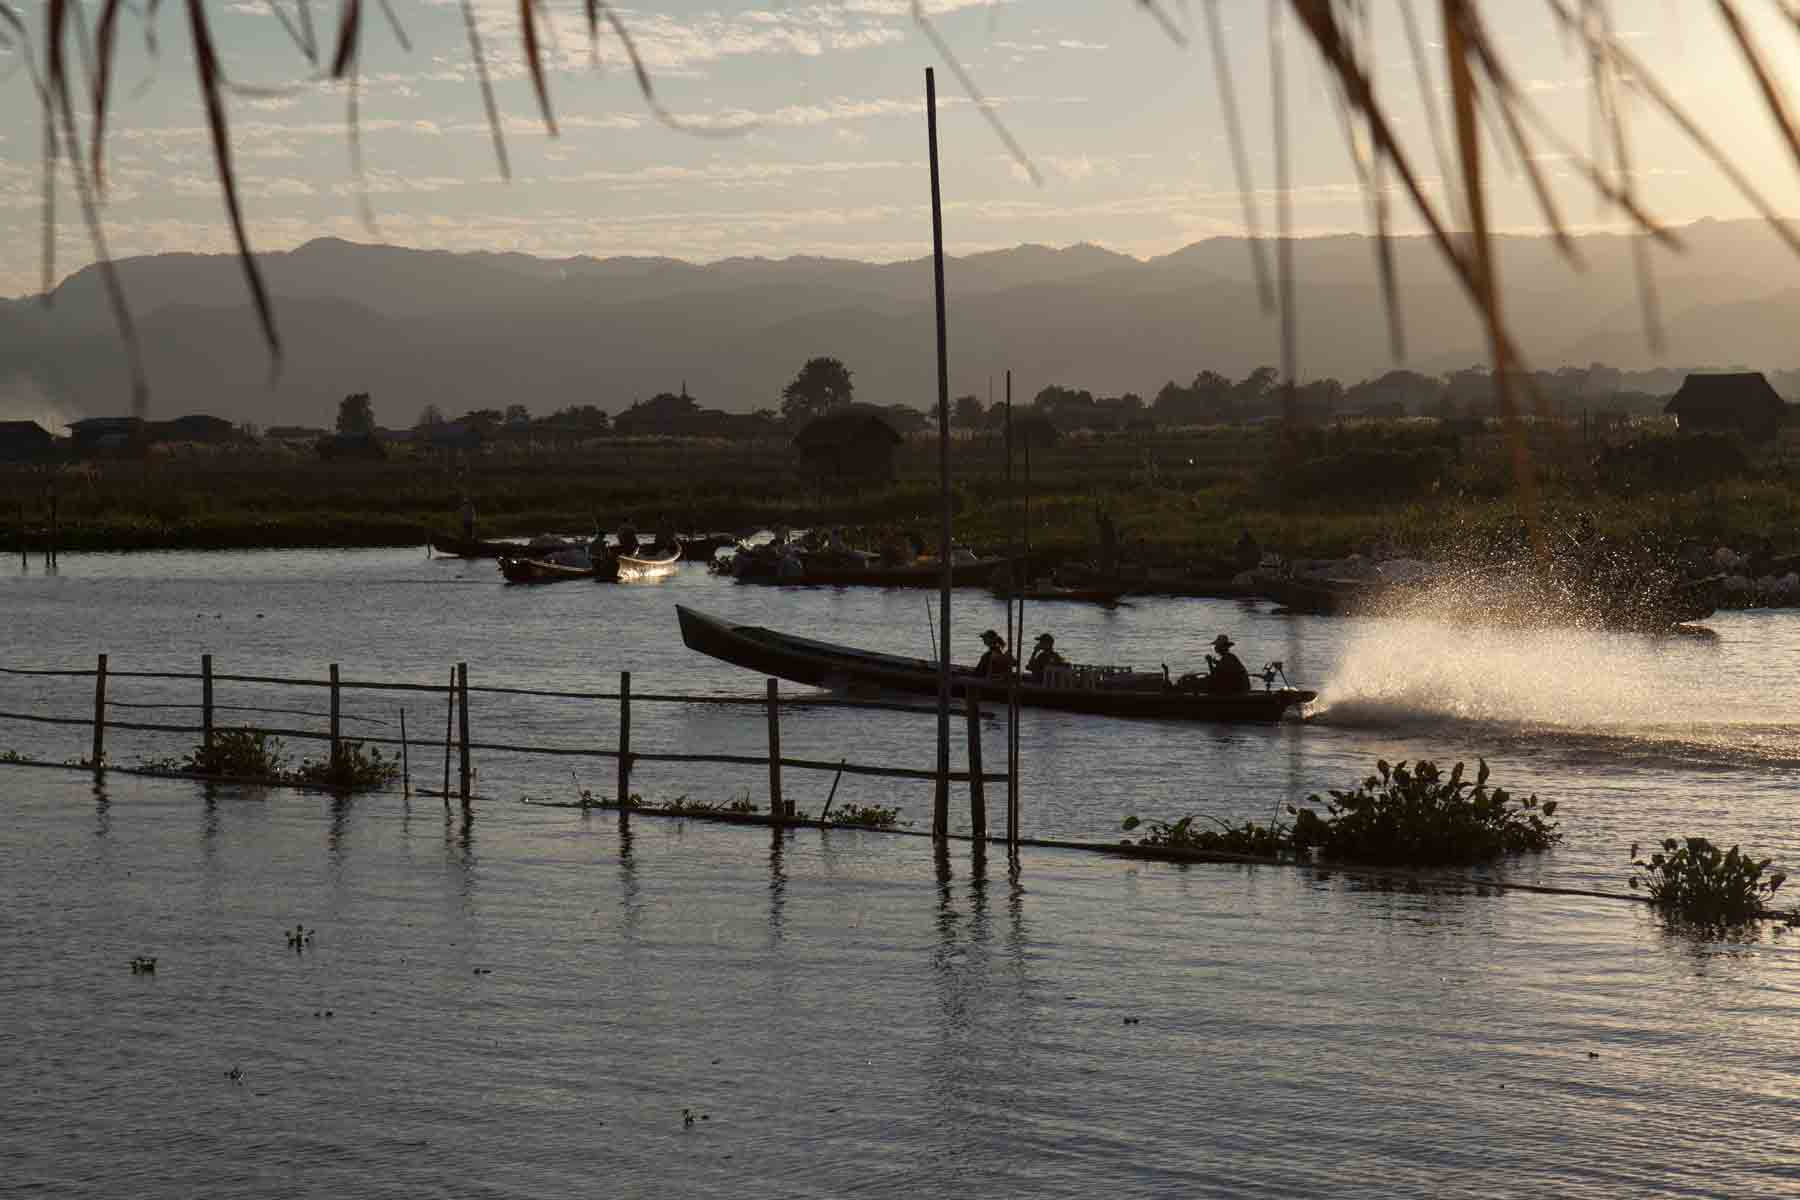 Early morning commute on Lake Inle